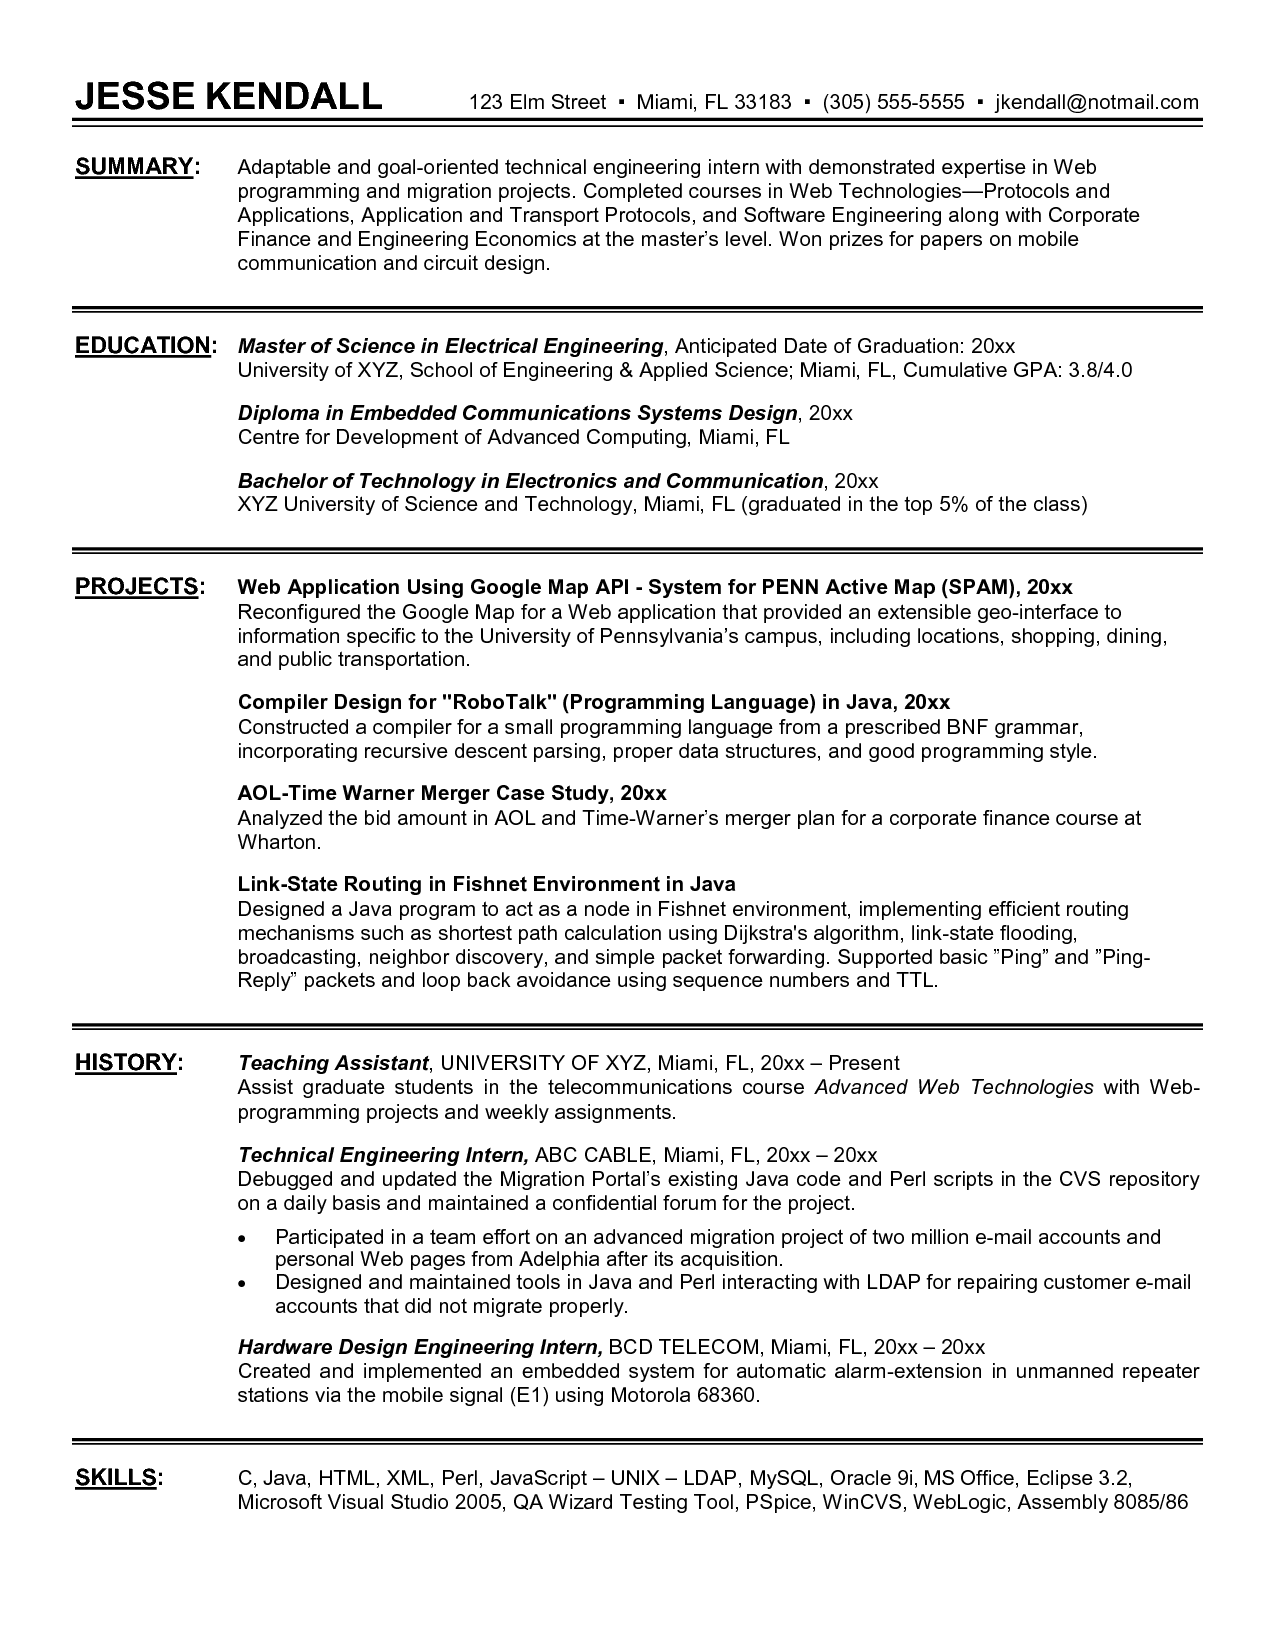 Telecom Installer Cover Letter Pin By Jhonny Bravo On The Best Software Reviews Sample Resume